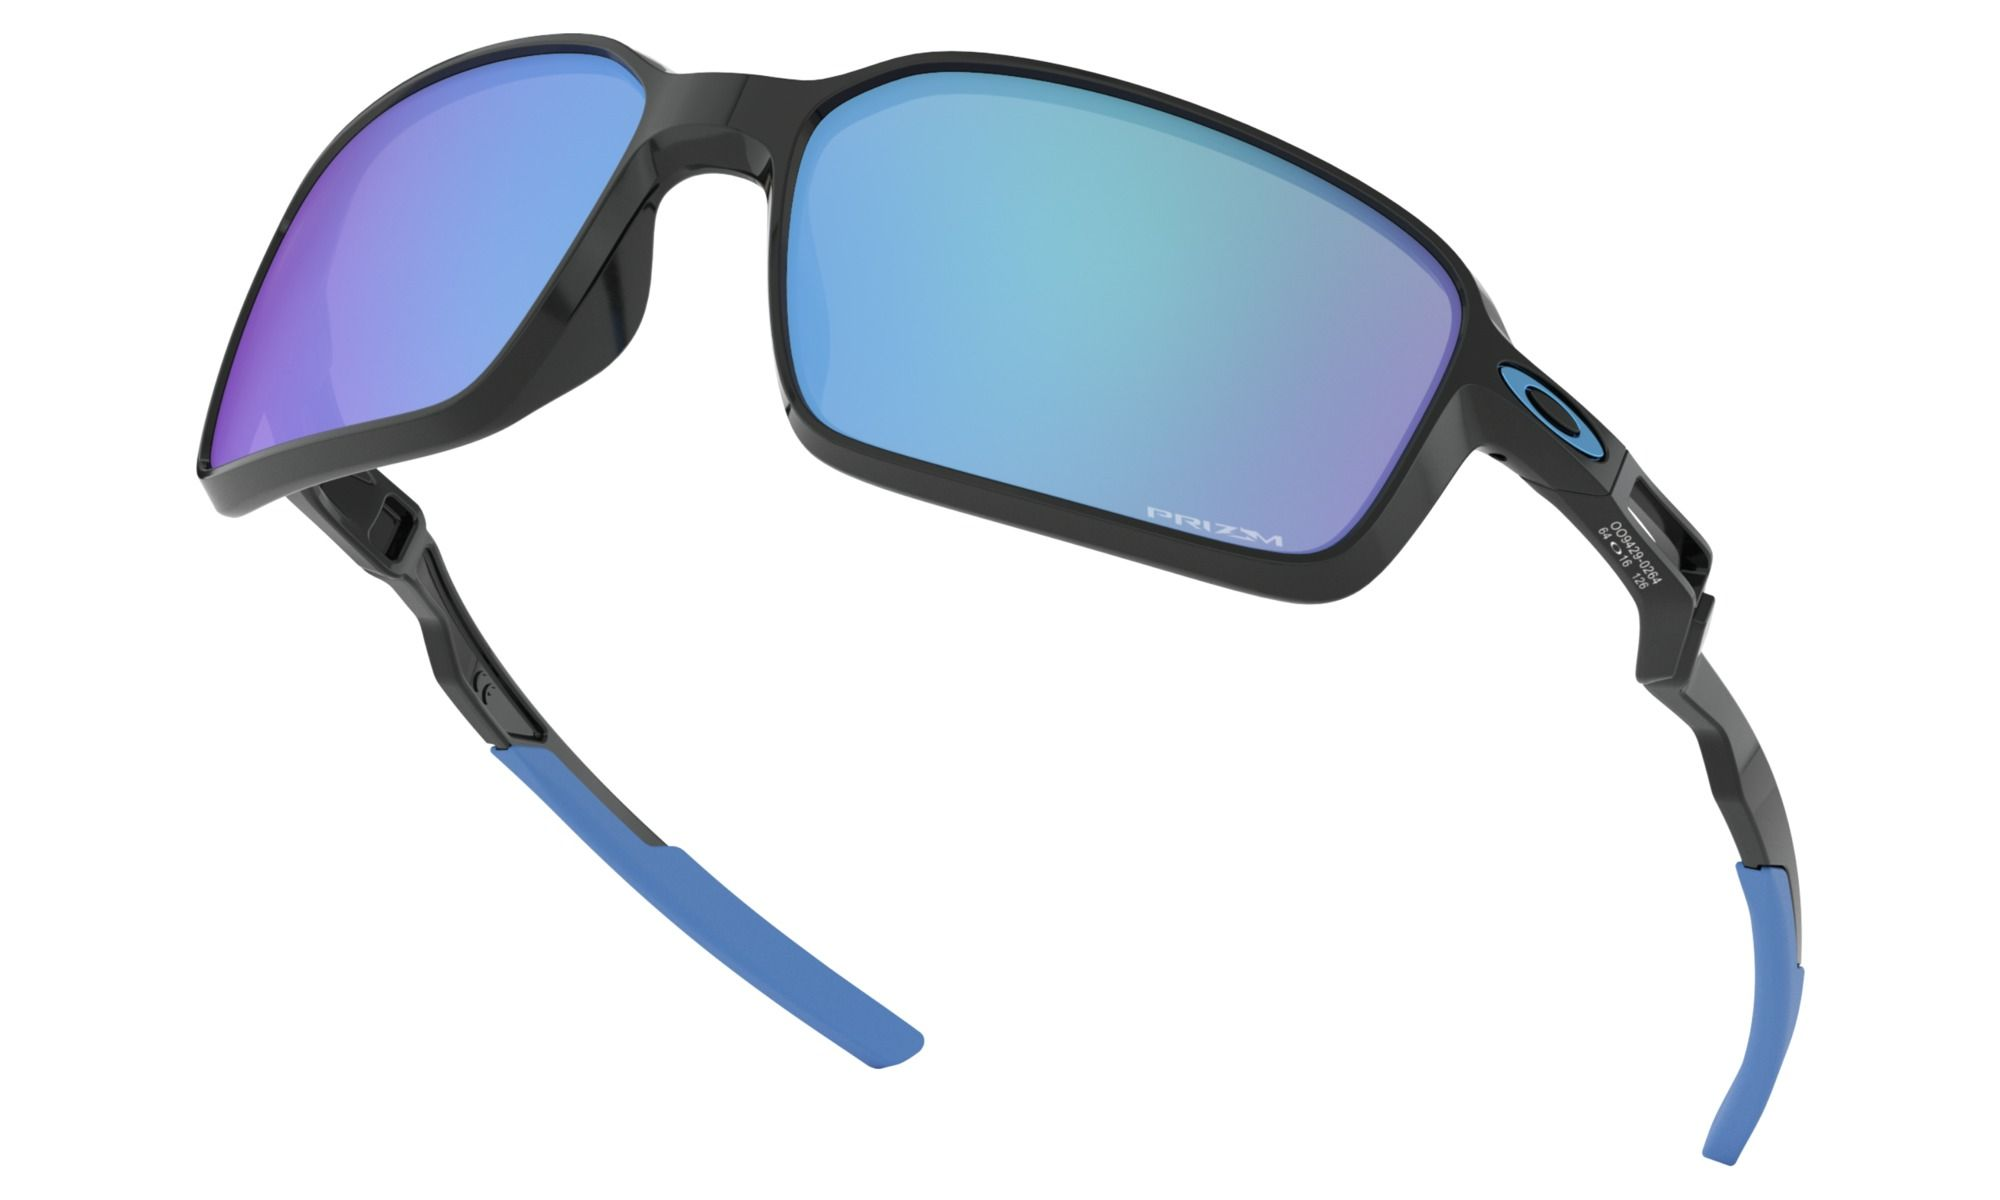 aa63df35703 Buy Oakley sunglasses for Mens Siphon with Polished Black frame and Prizm  Sapphire lenses. Discover more on Oakley US Store Online.